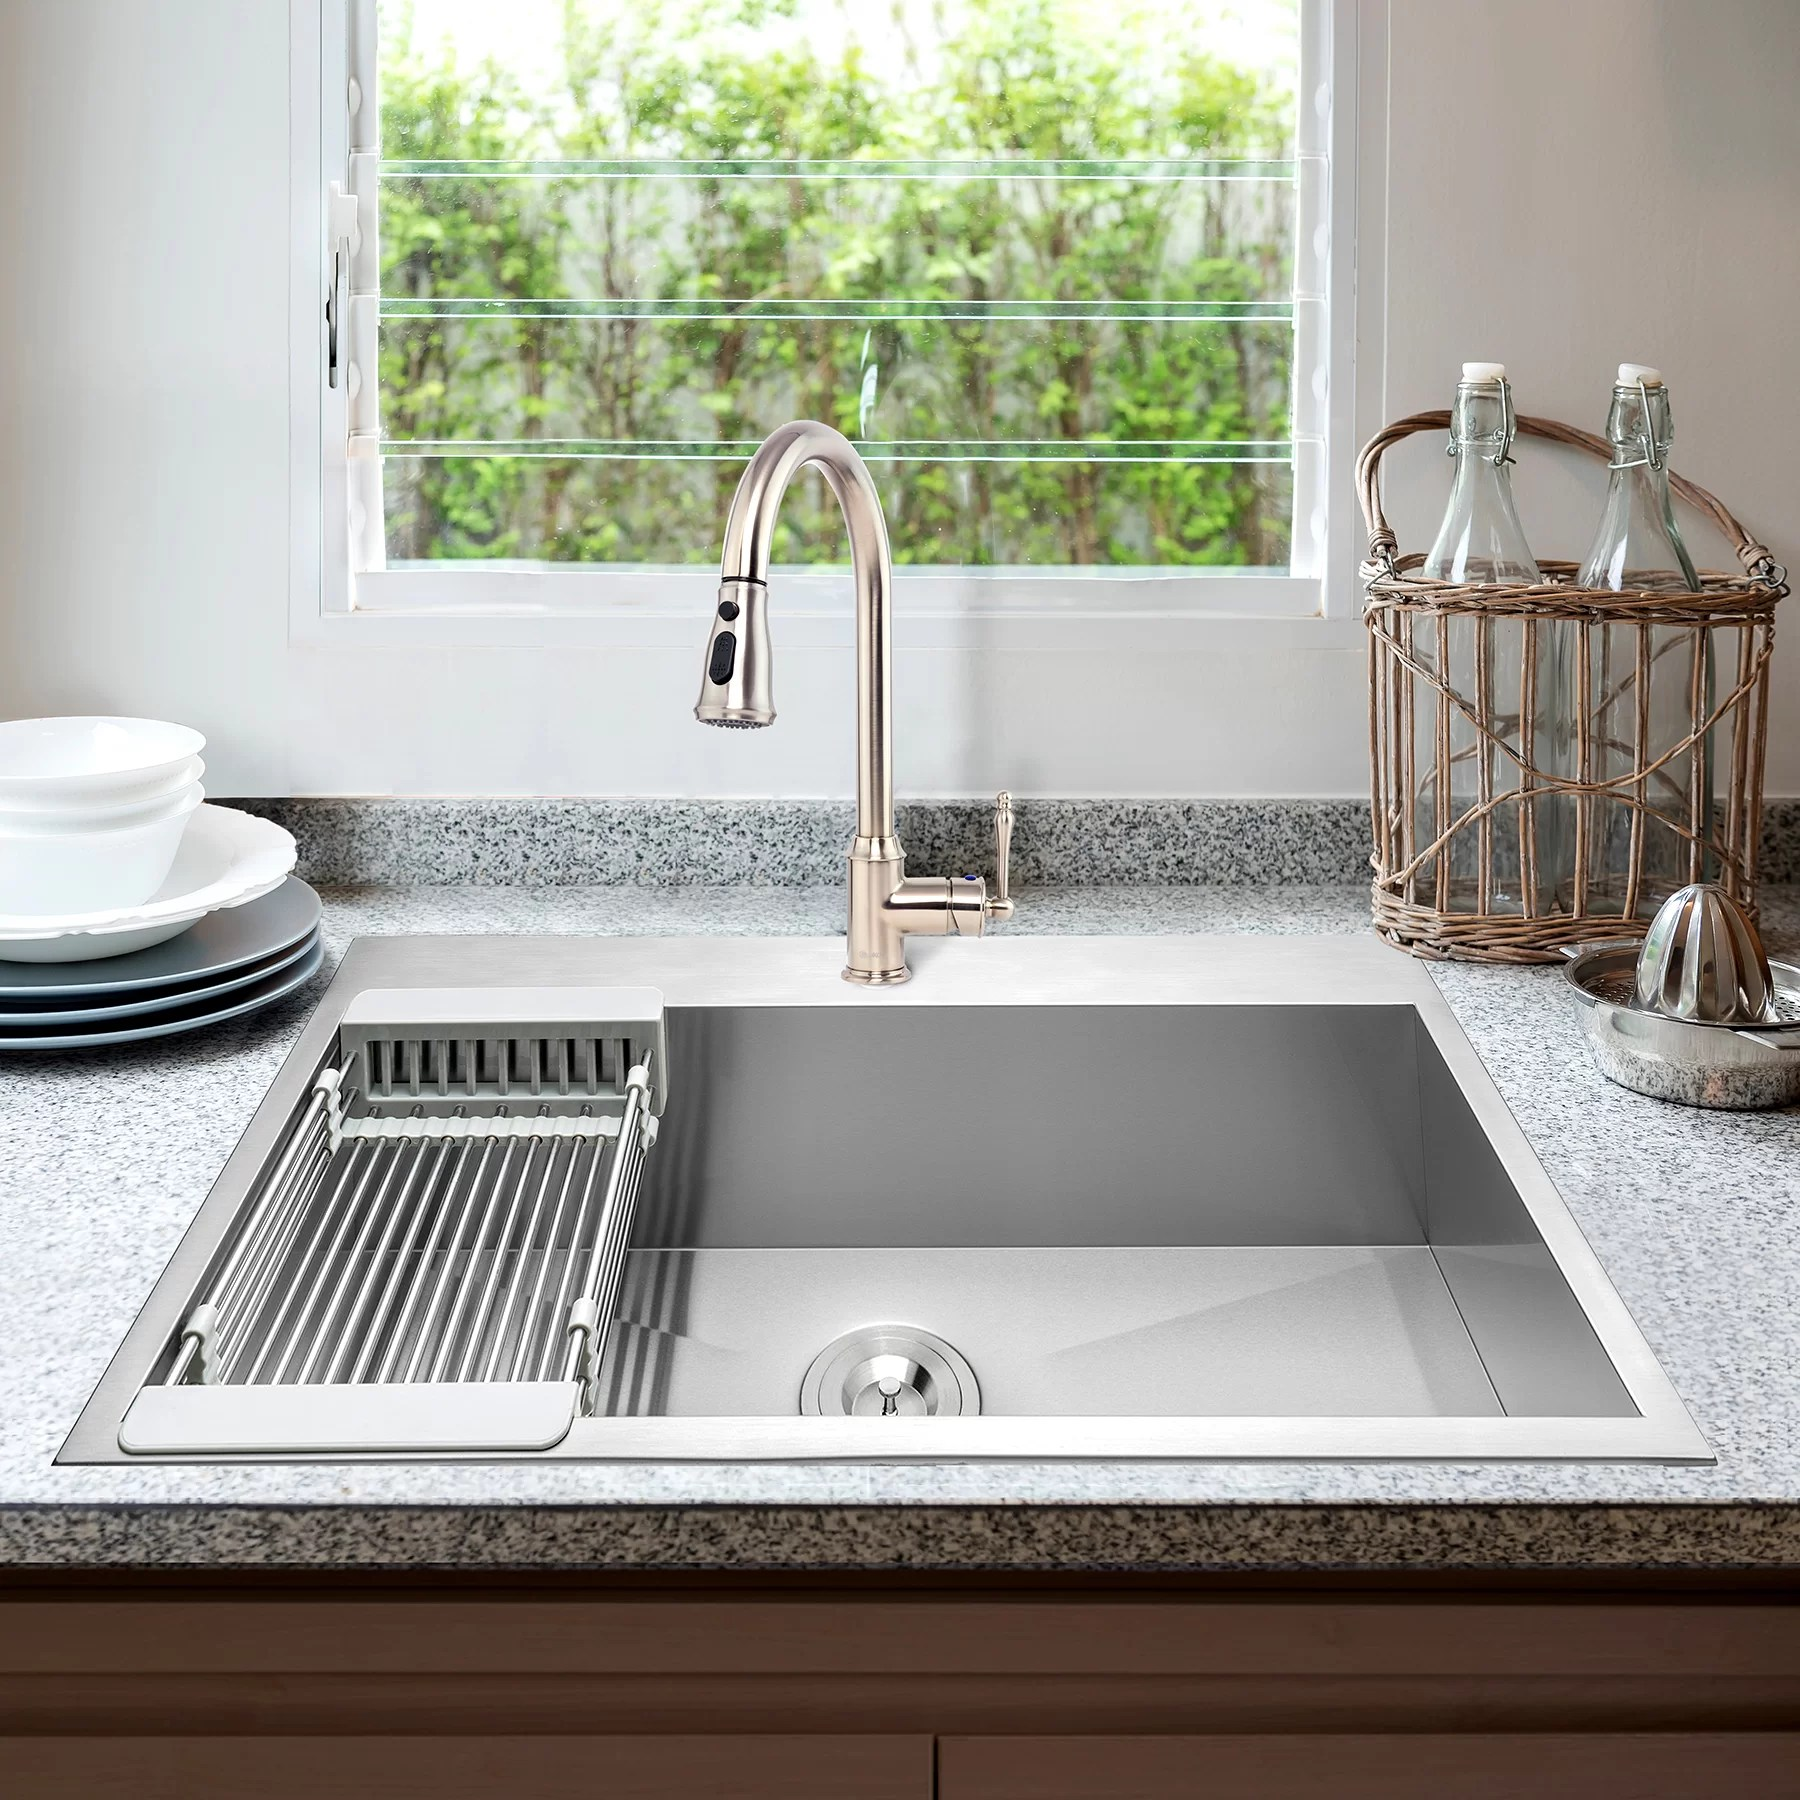 33 l x 22 w drop in kitchen sink with faucet